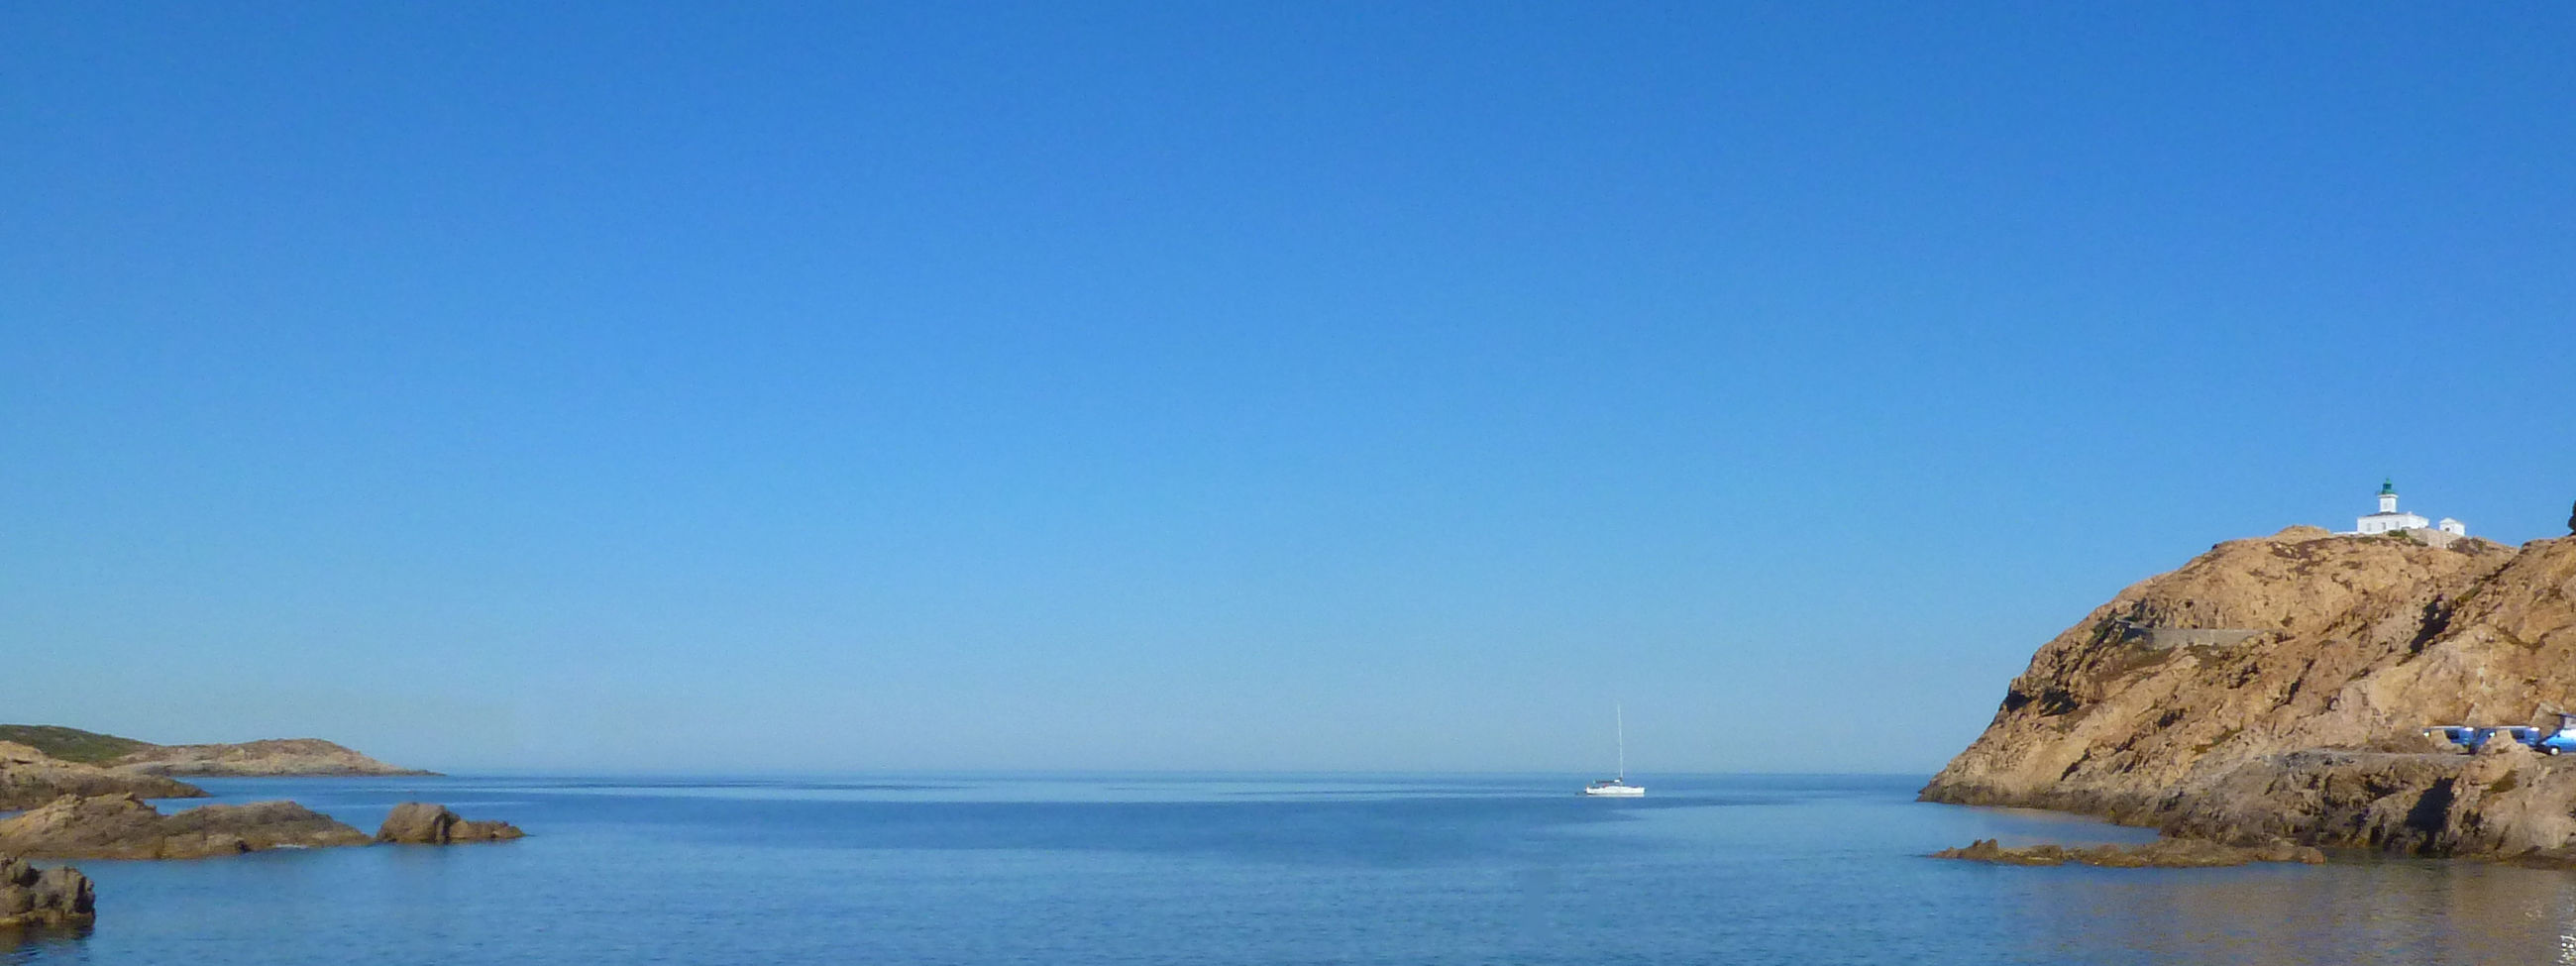 sea, water, clear sky, copy space, tranquil scene, tranquility, horizon over water, blue, scenics, beauty in nature, nature, rock - object, cliff, rock formation, waterfront, idyllic, rock, calm, remote, nautical vessel